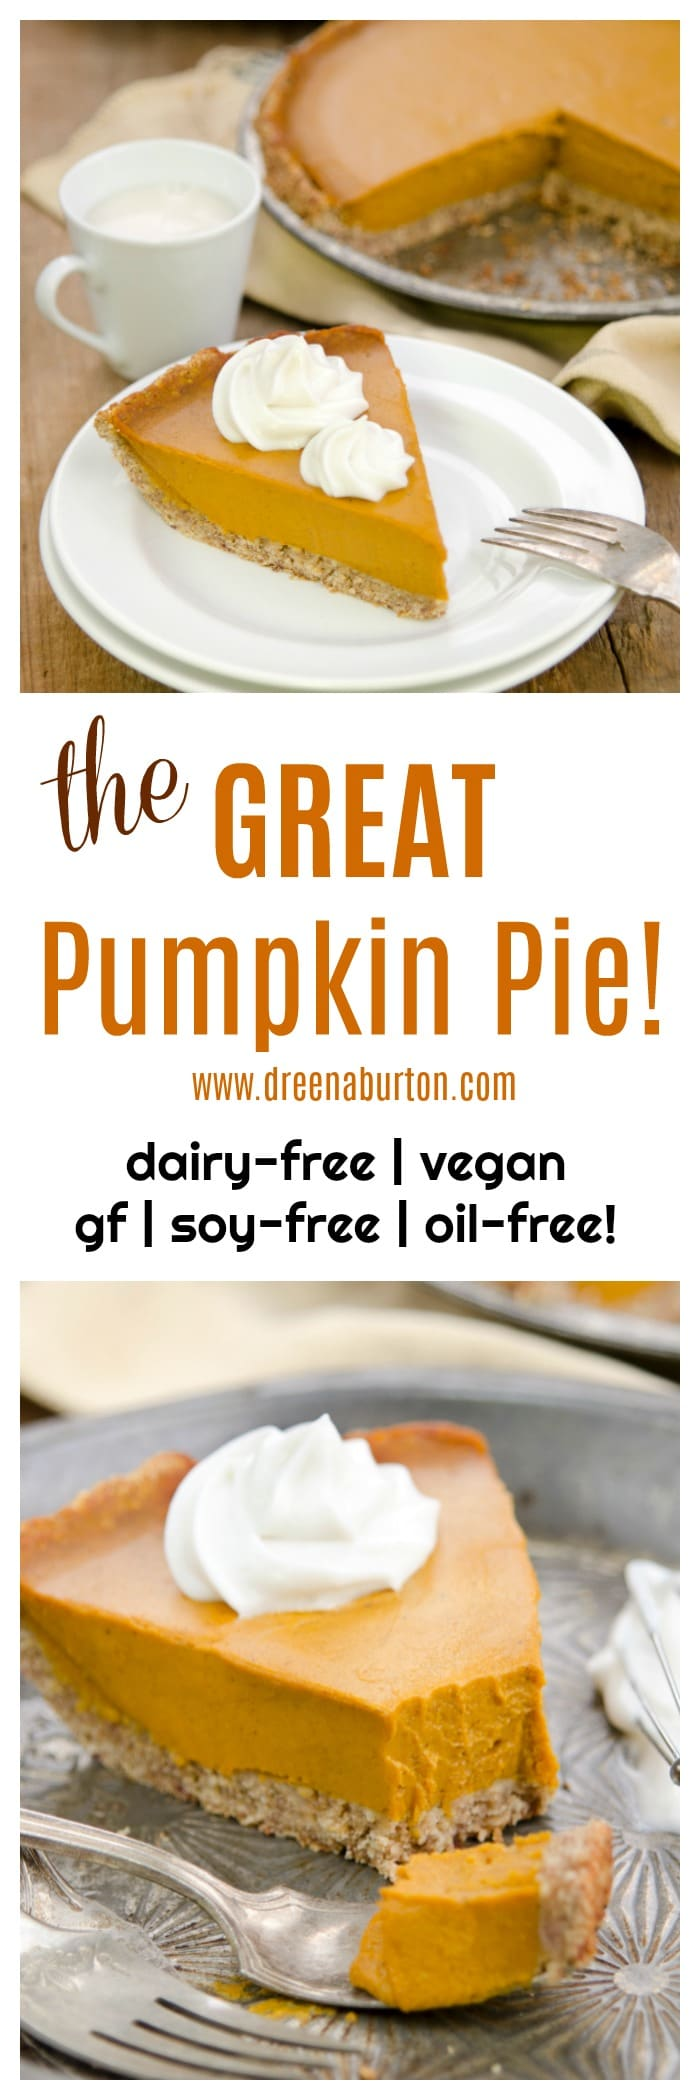 The GREAT Vegan Pumpkin Pie! This is it, the ultimate vegan pumpkin pie - made without vegan cream substitutes, NO oil, NO gluten, NO soy. It's easy and scrumptious!